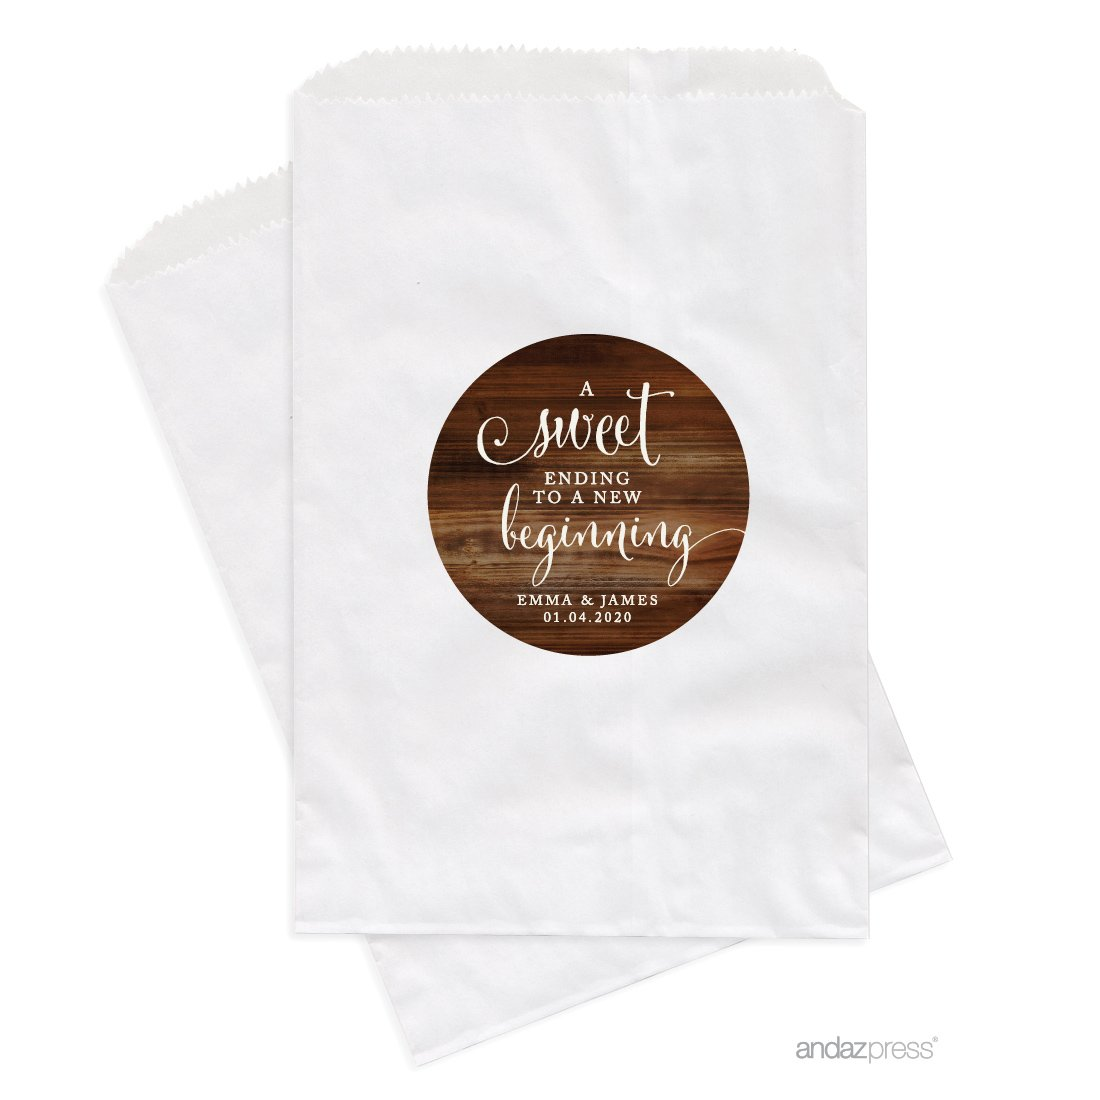 Andaz Press Personalized Dessert Table Party Favor Bags, A Sweet Ending to a New Beginning, Rustic Wood Print, 24-Pack, Custom For Wedding Baby Shower Graduation Candy Buffet Treat Bags